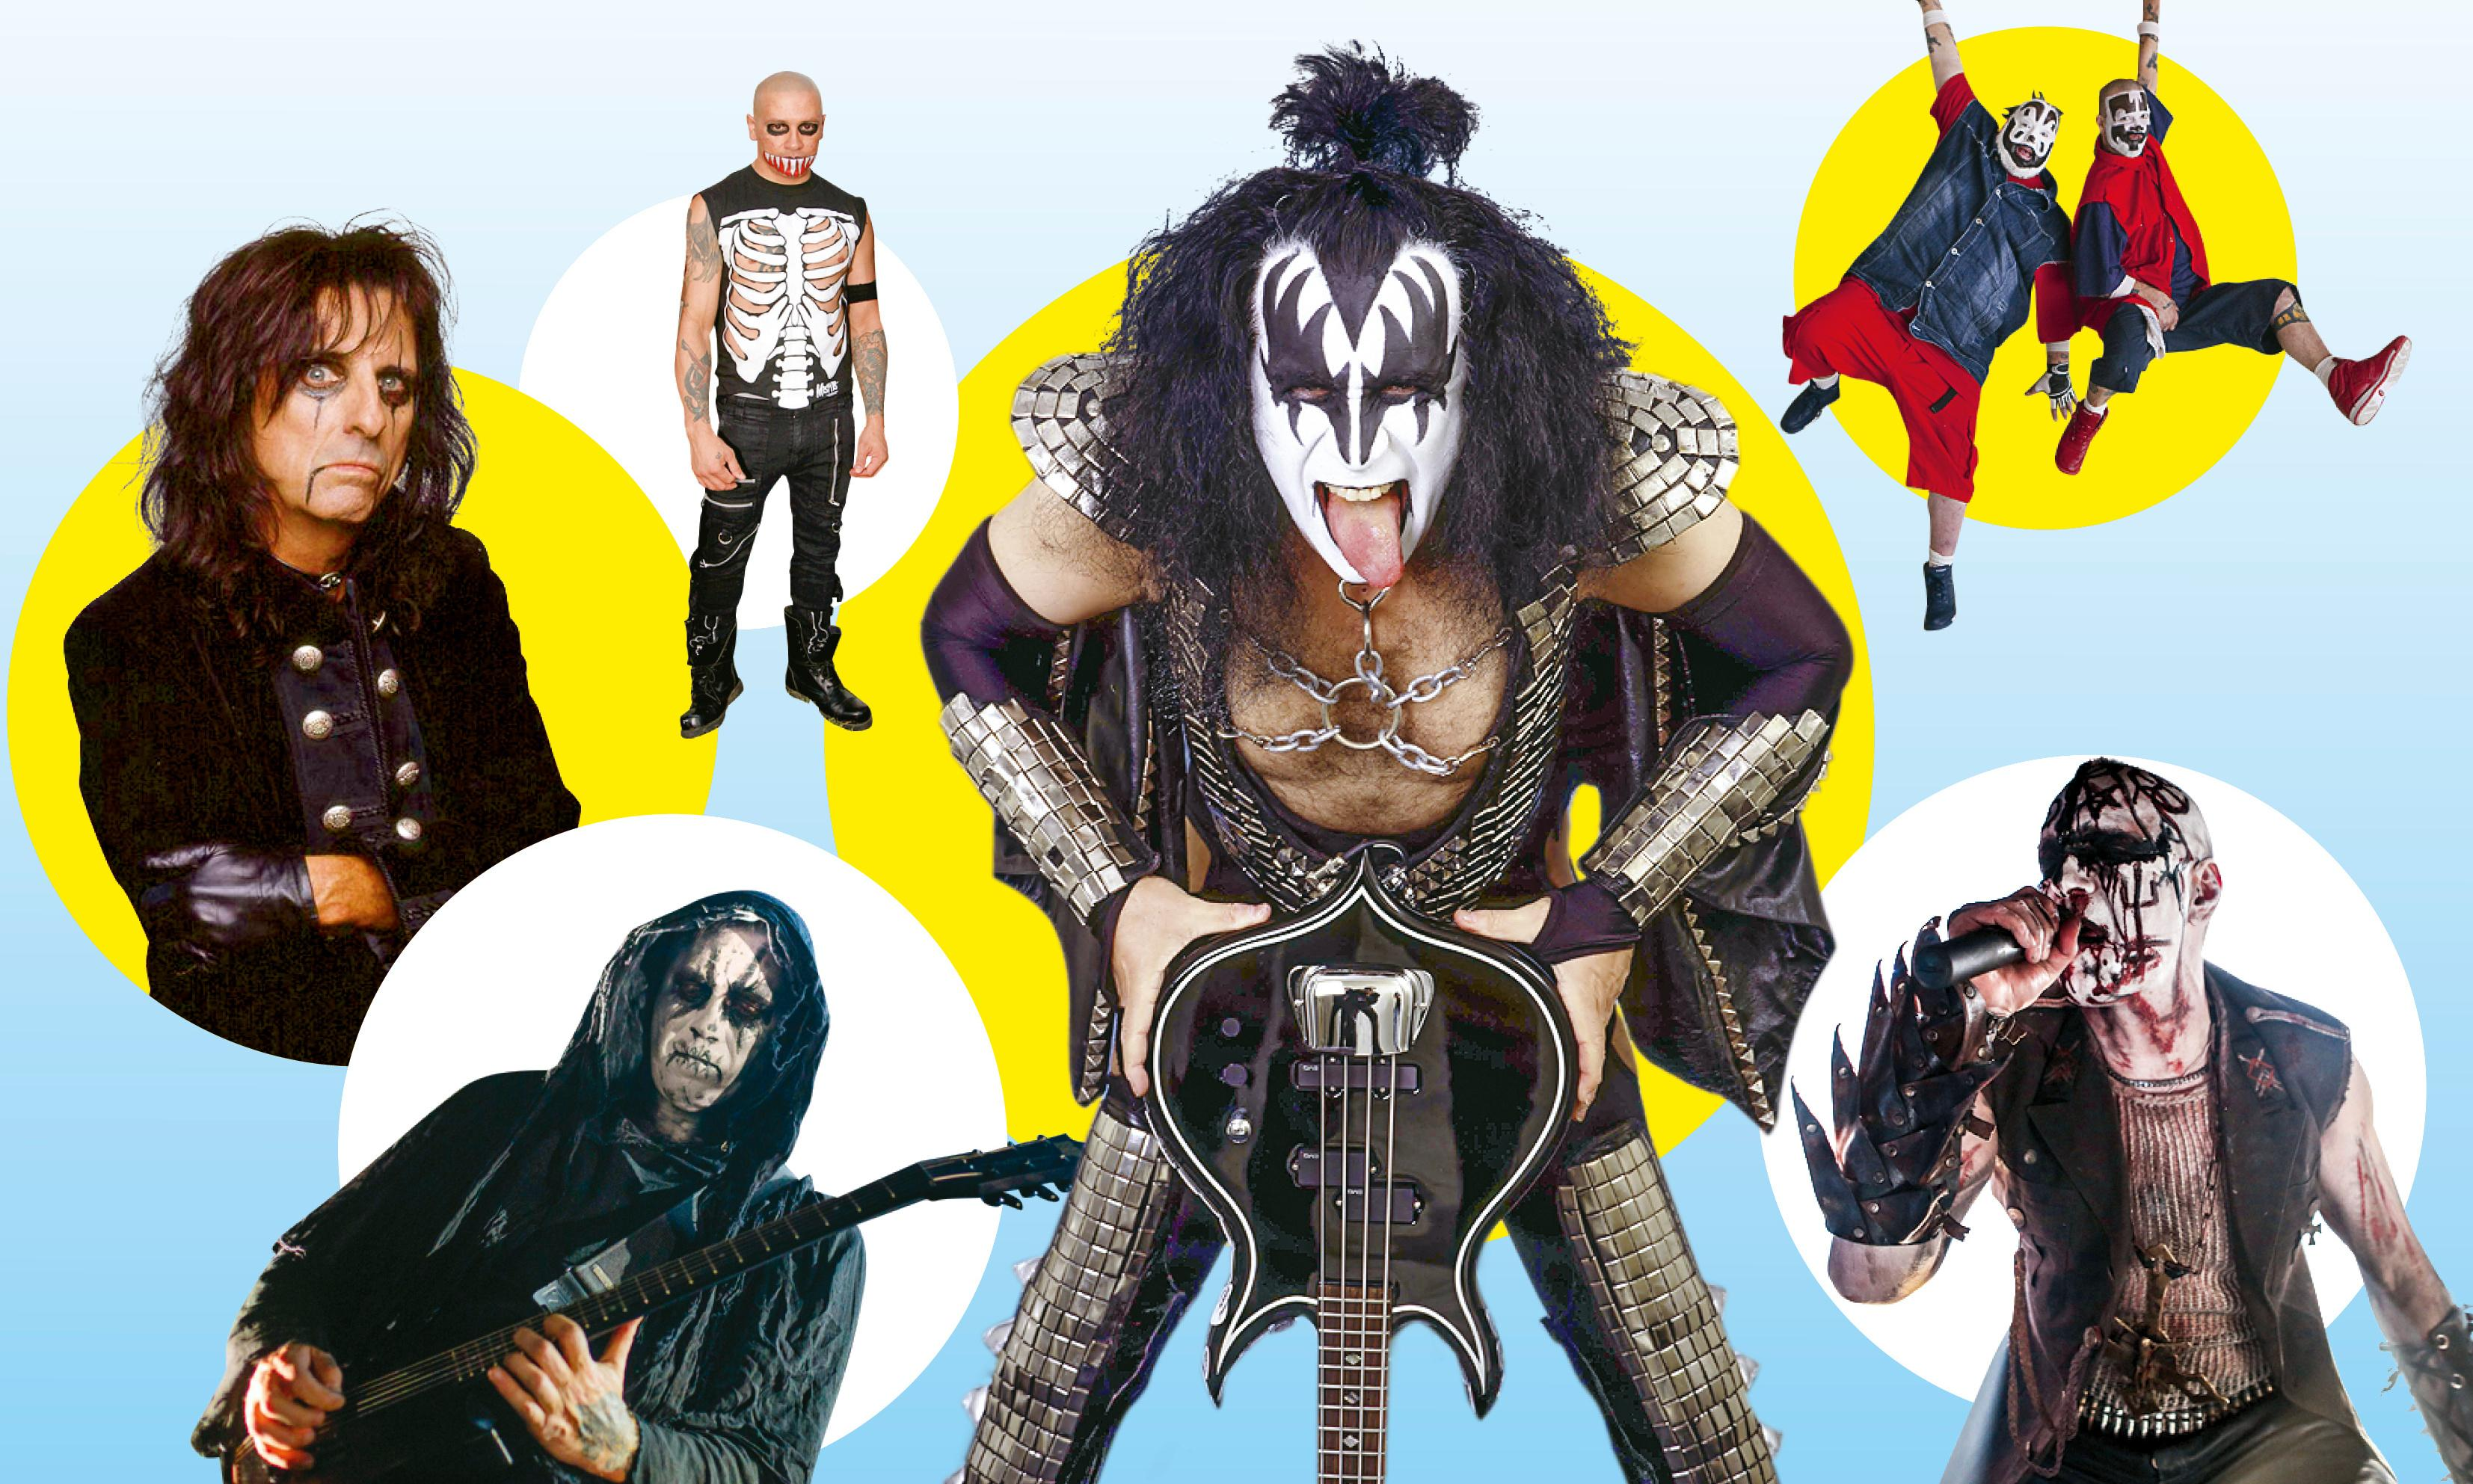 Kiss, Misfits, Mayhem: which metal band has the scariest makeup?